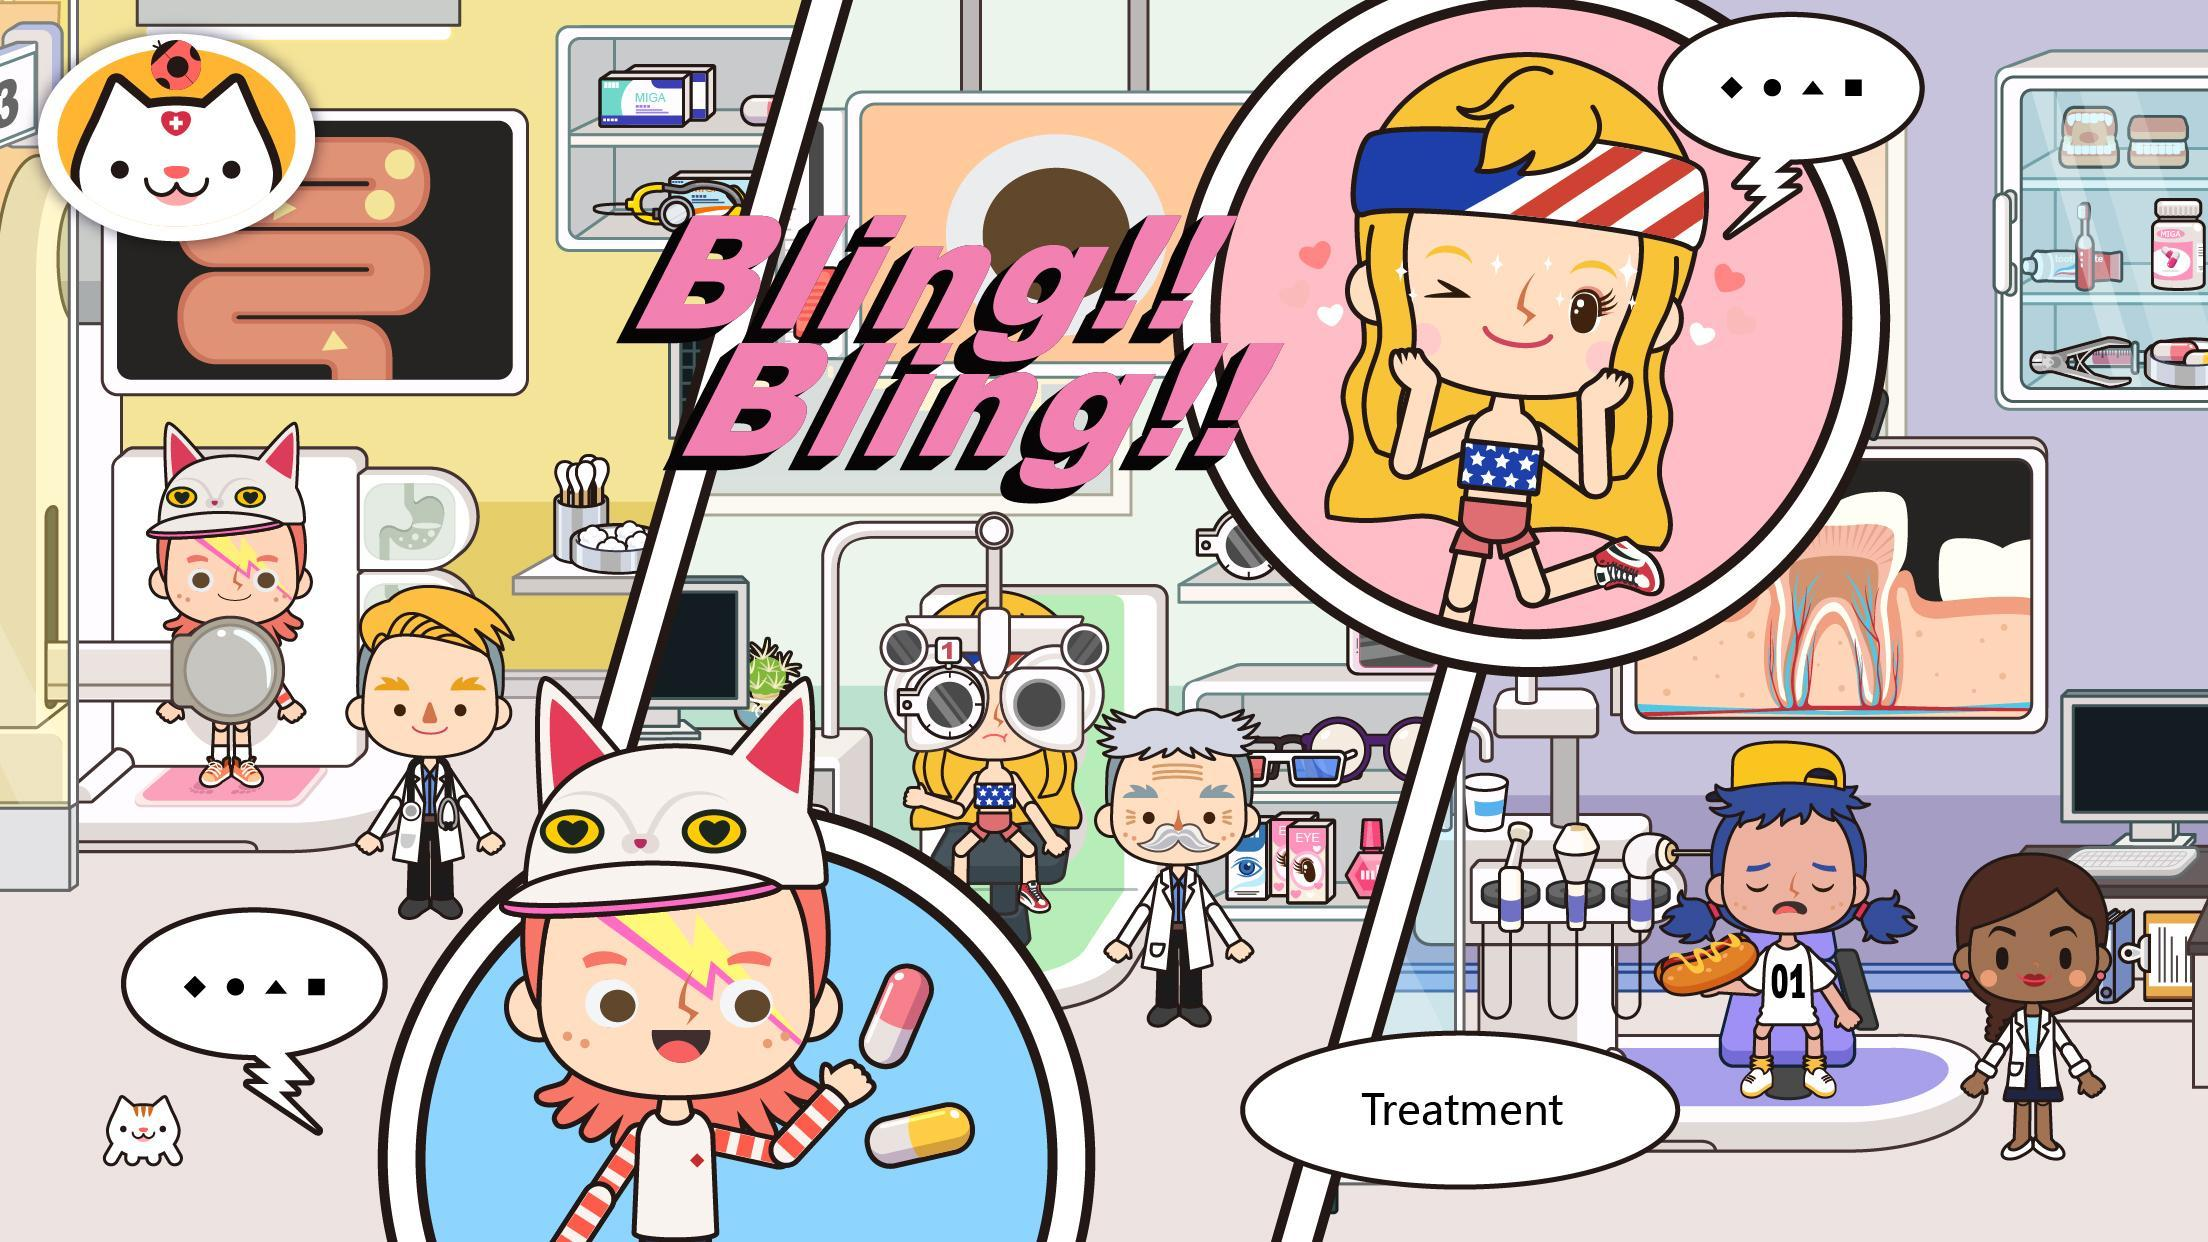 Miga Town: My Hospital for Android - APK Download